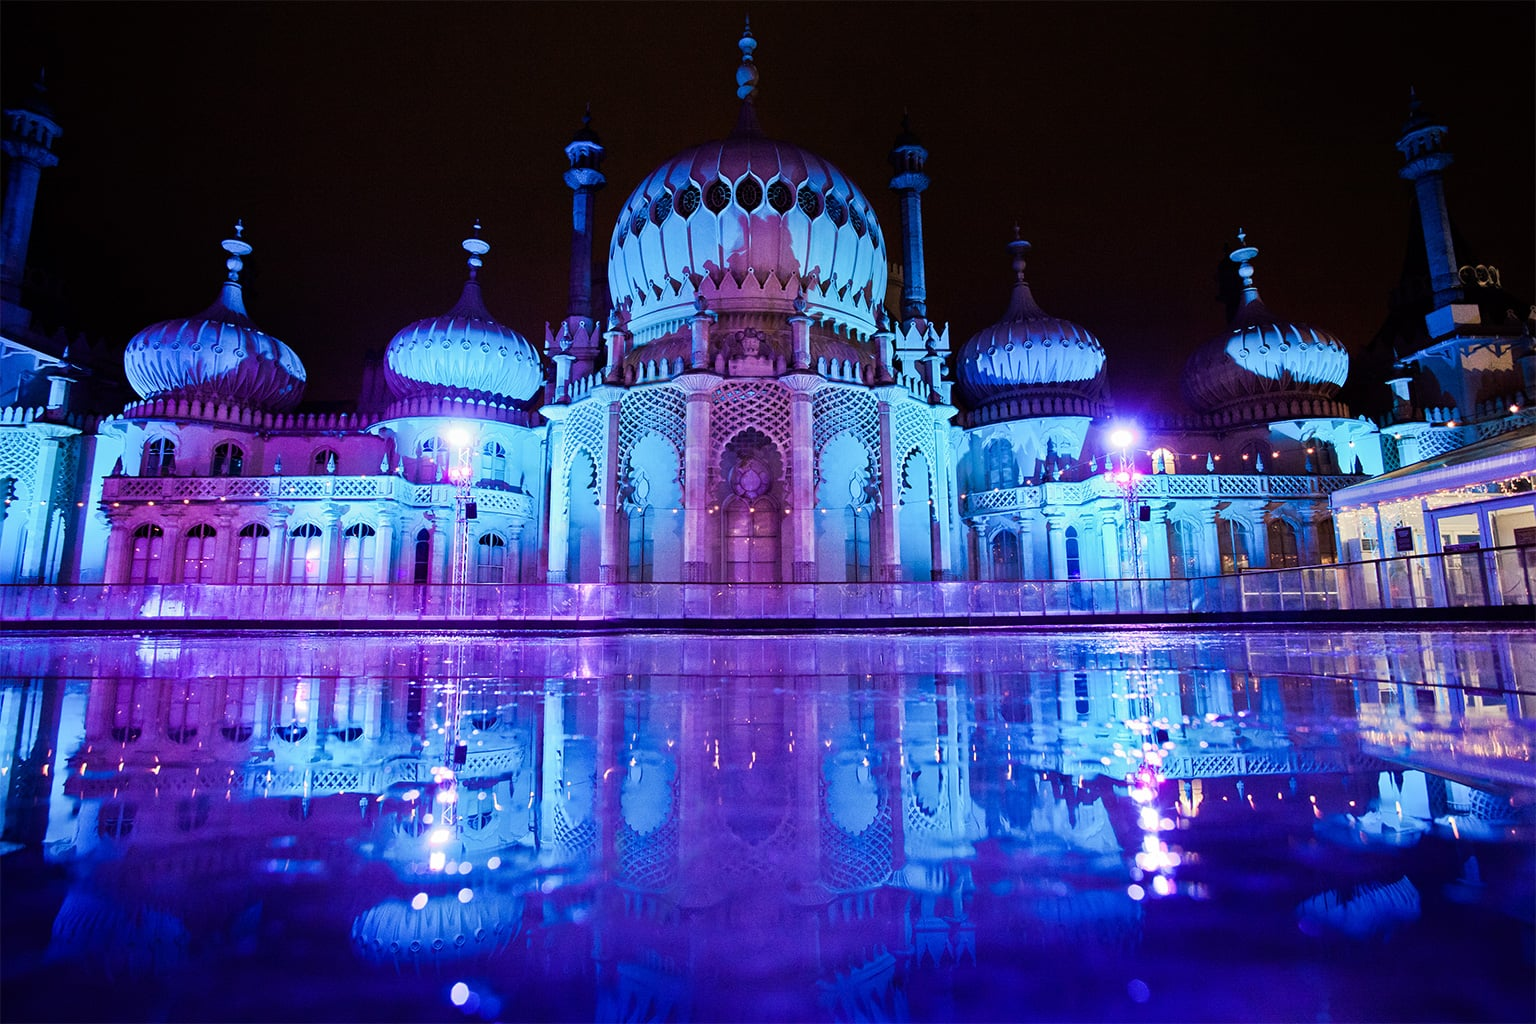 2. Royal Pavilion, Brighton - Free entry with National Art Pass